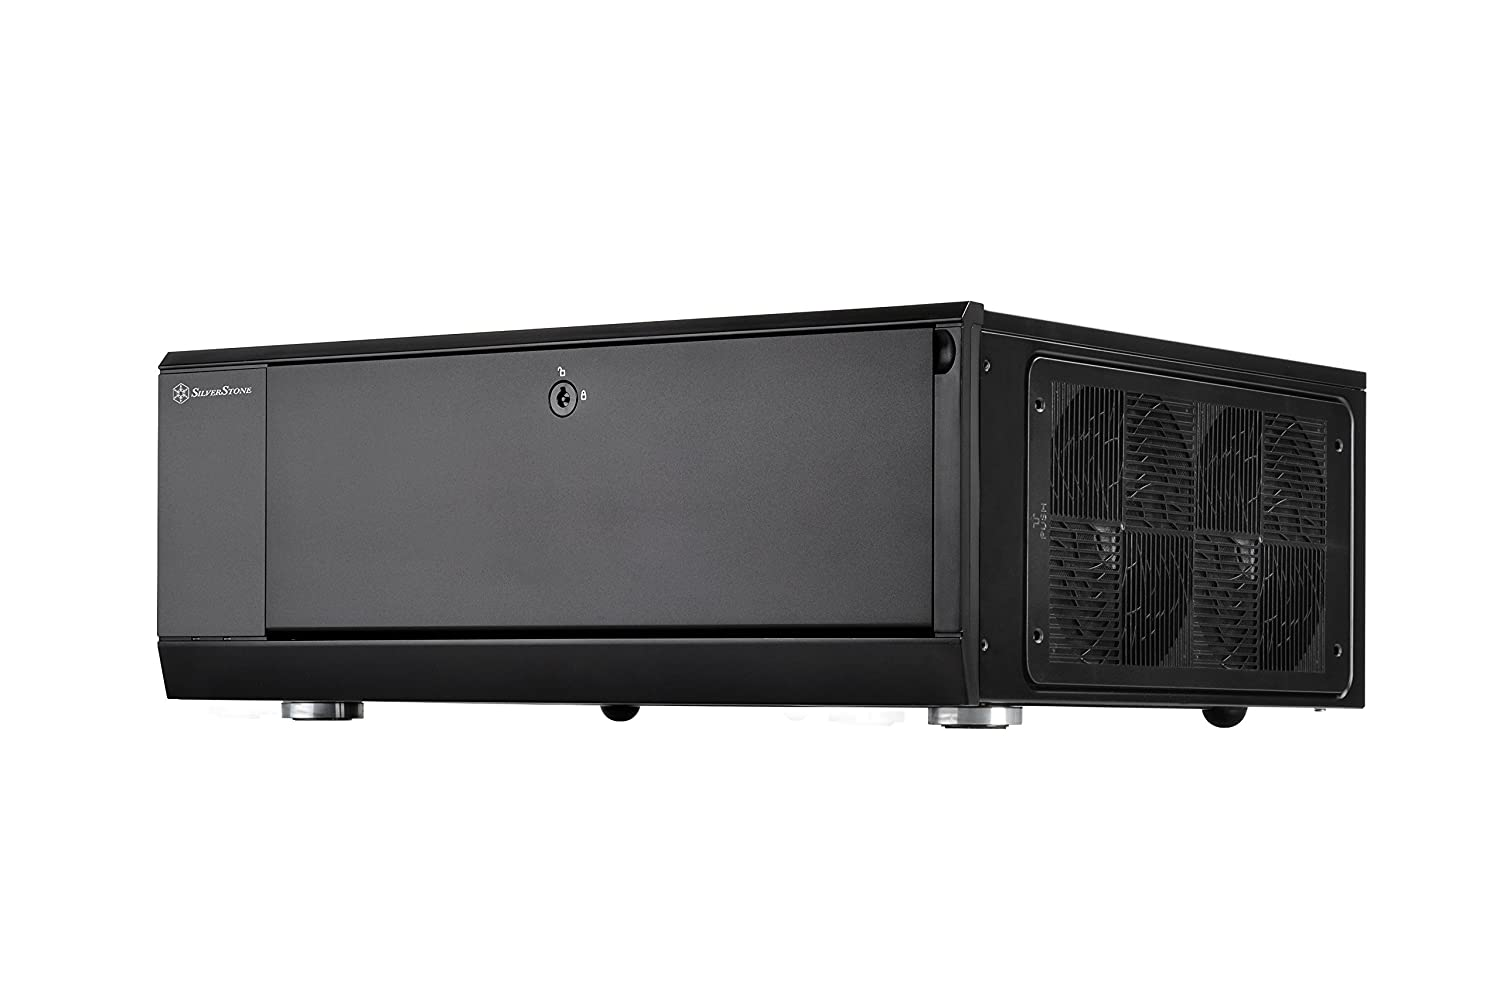 SilverStone Technology Home Theater Computer Case(HTPC)with lockable front panel for ATX / Micro-ATX Motherboards GD10B